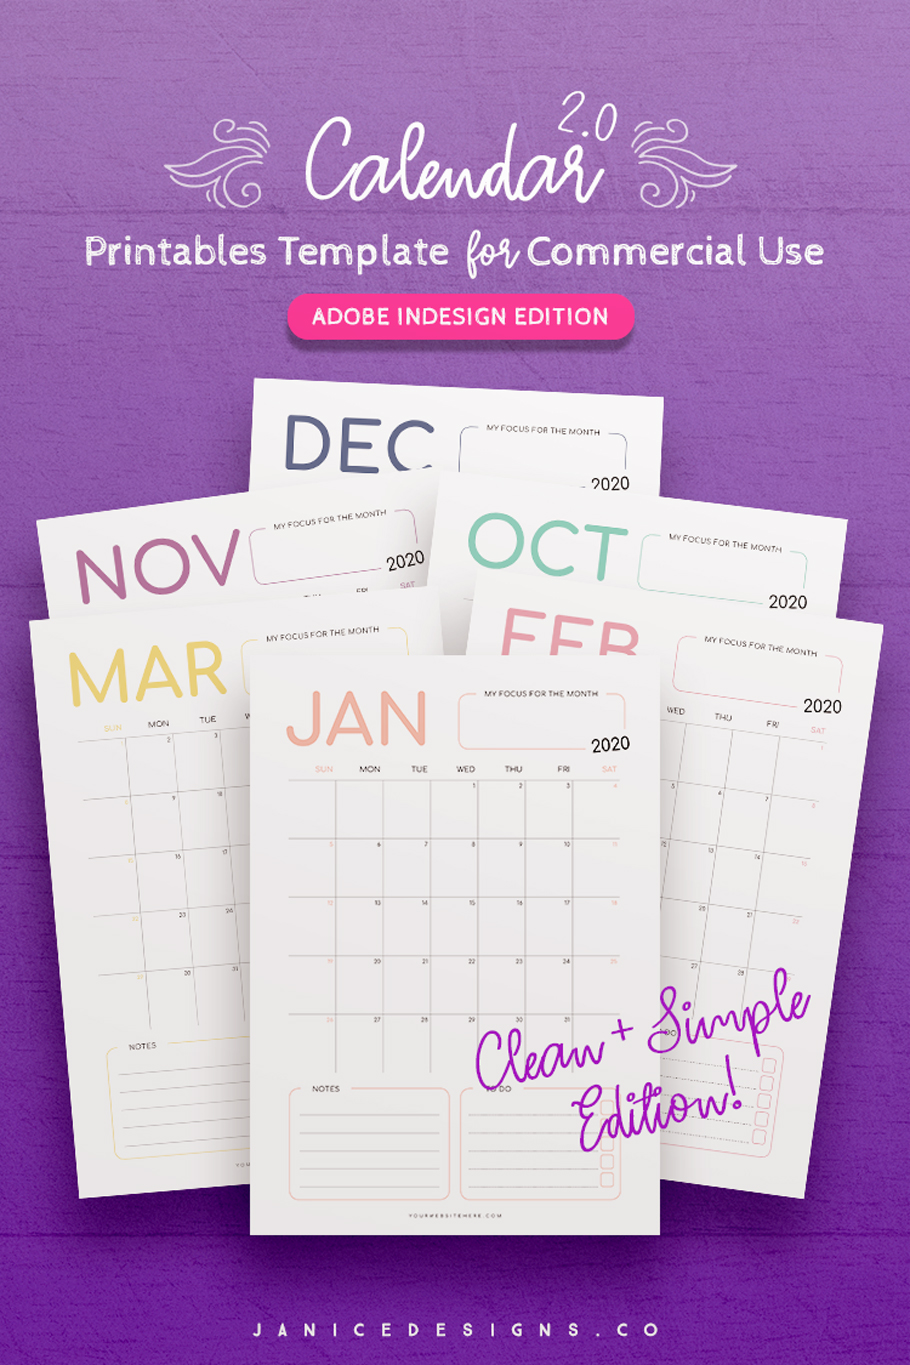 2020 Calendar InDesign Template for Commercial Use example image 2